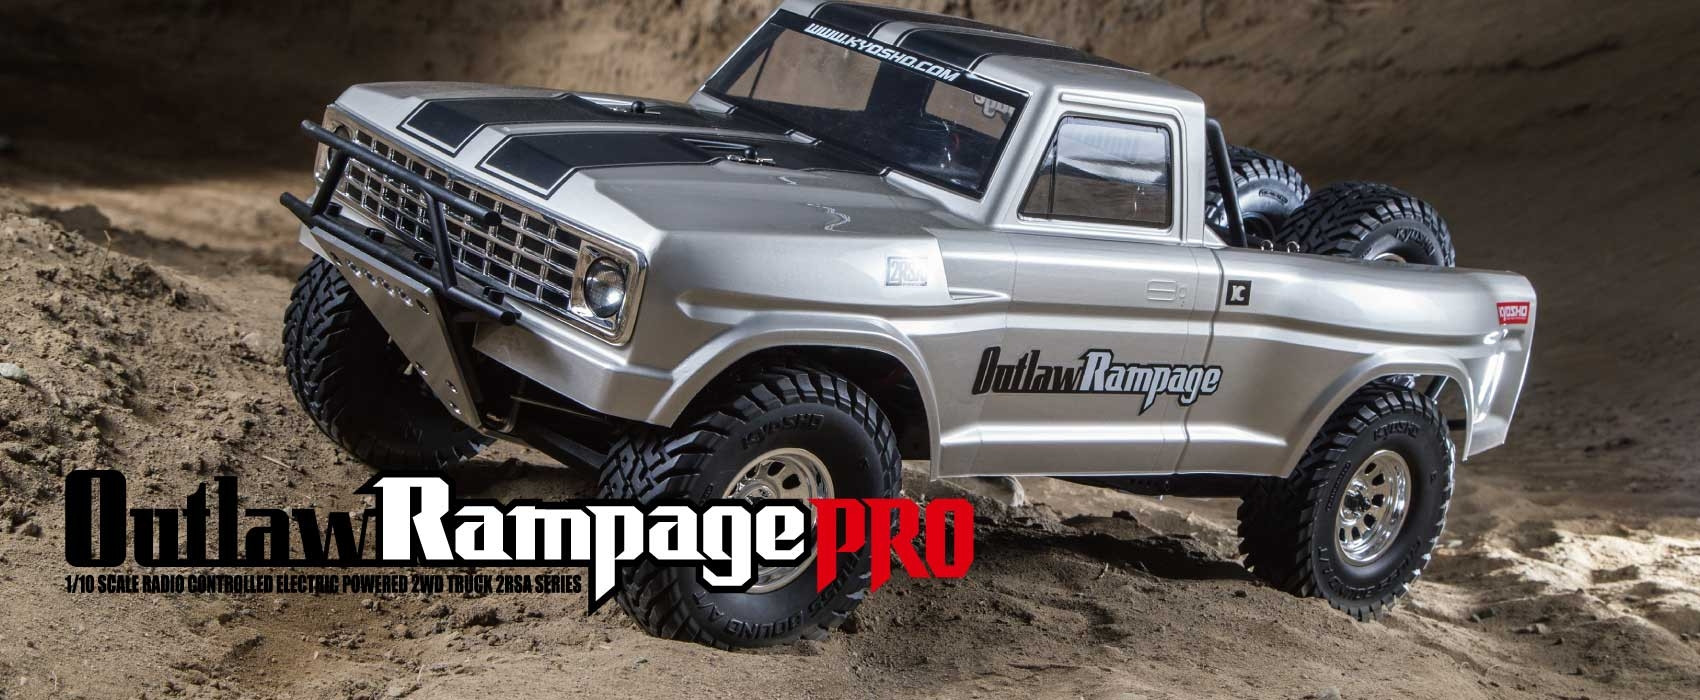 Outlaw Rampage Pro